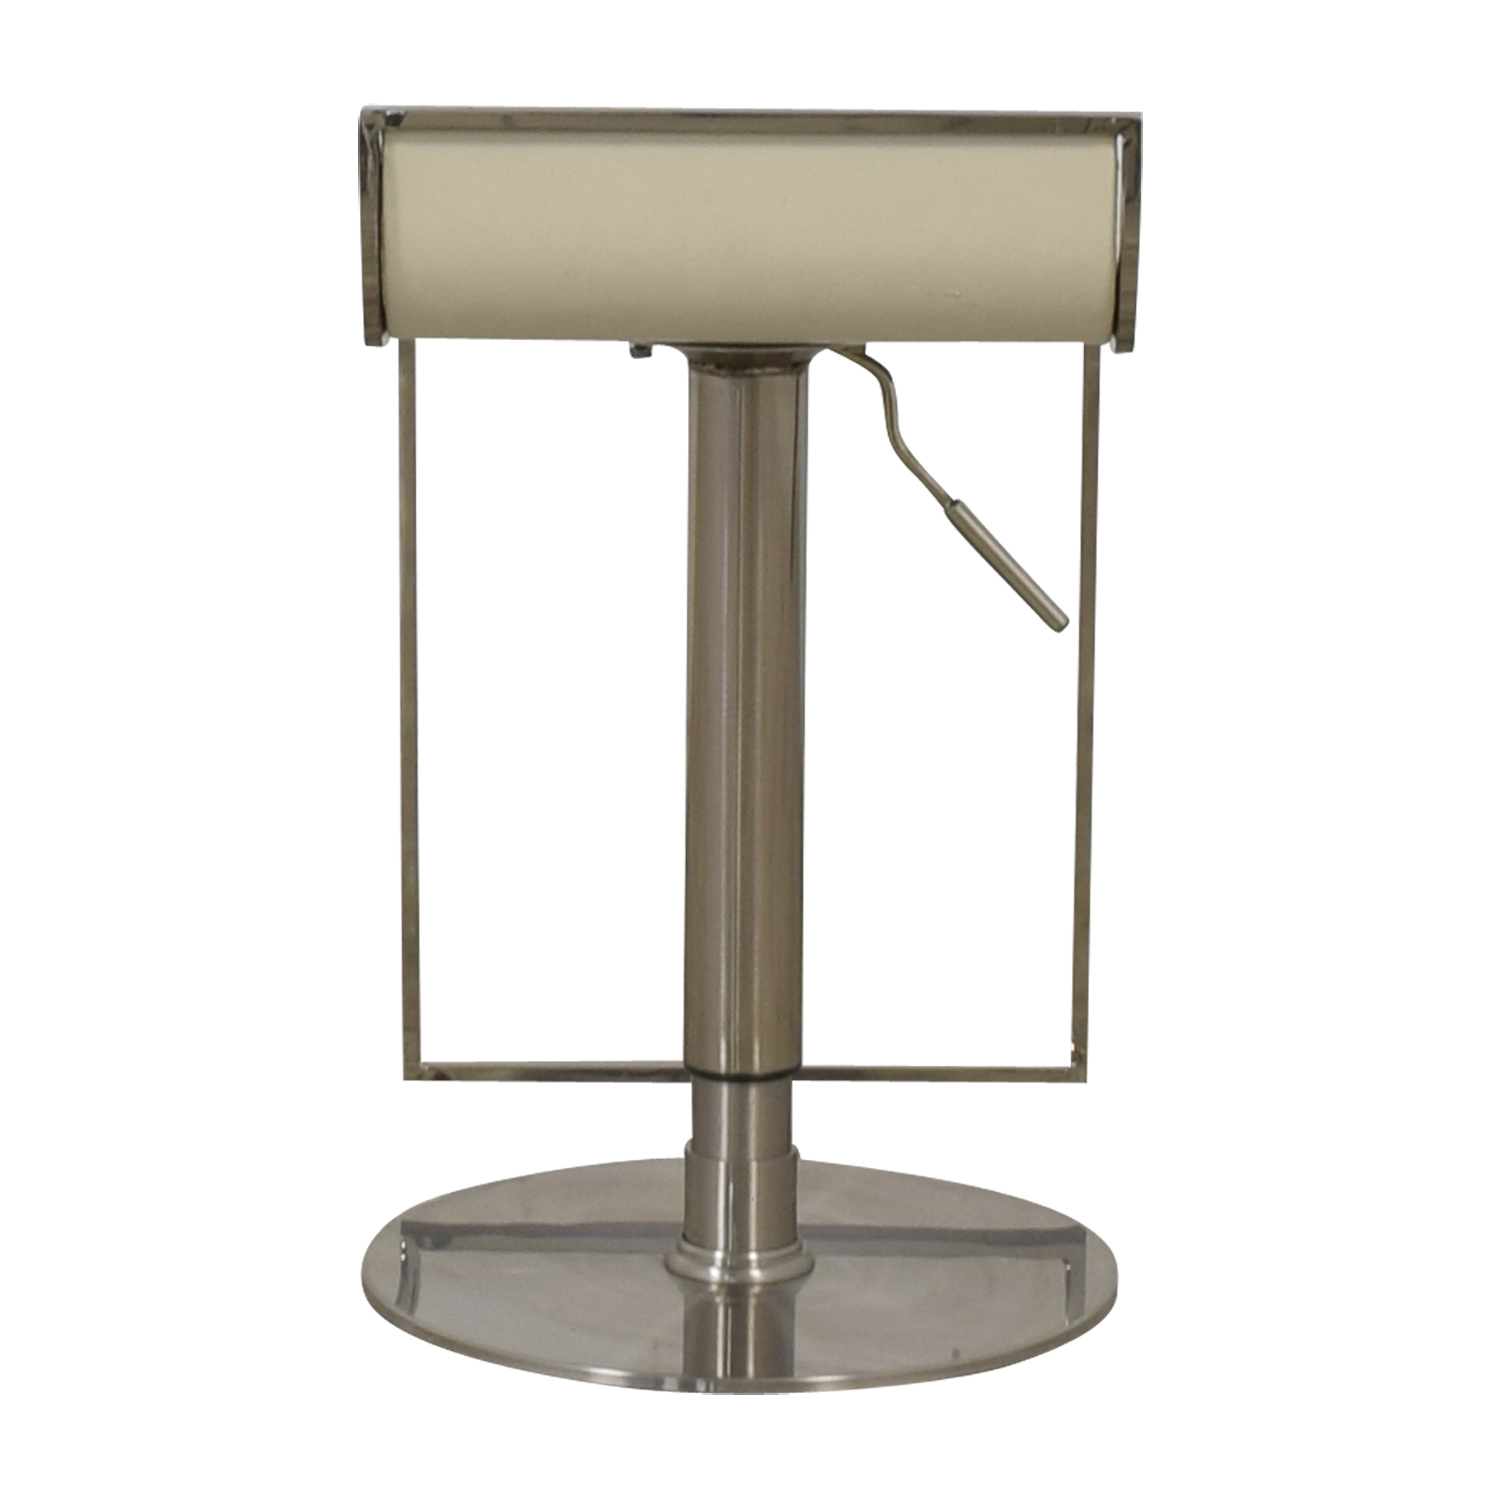 buy Tui Lifestyle Leather Bar Stool Tui Lifestyle Stools